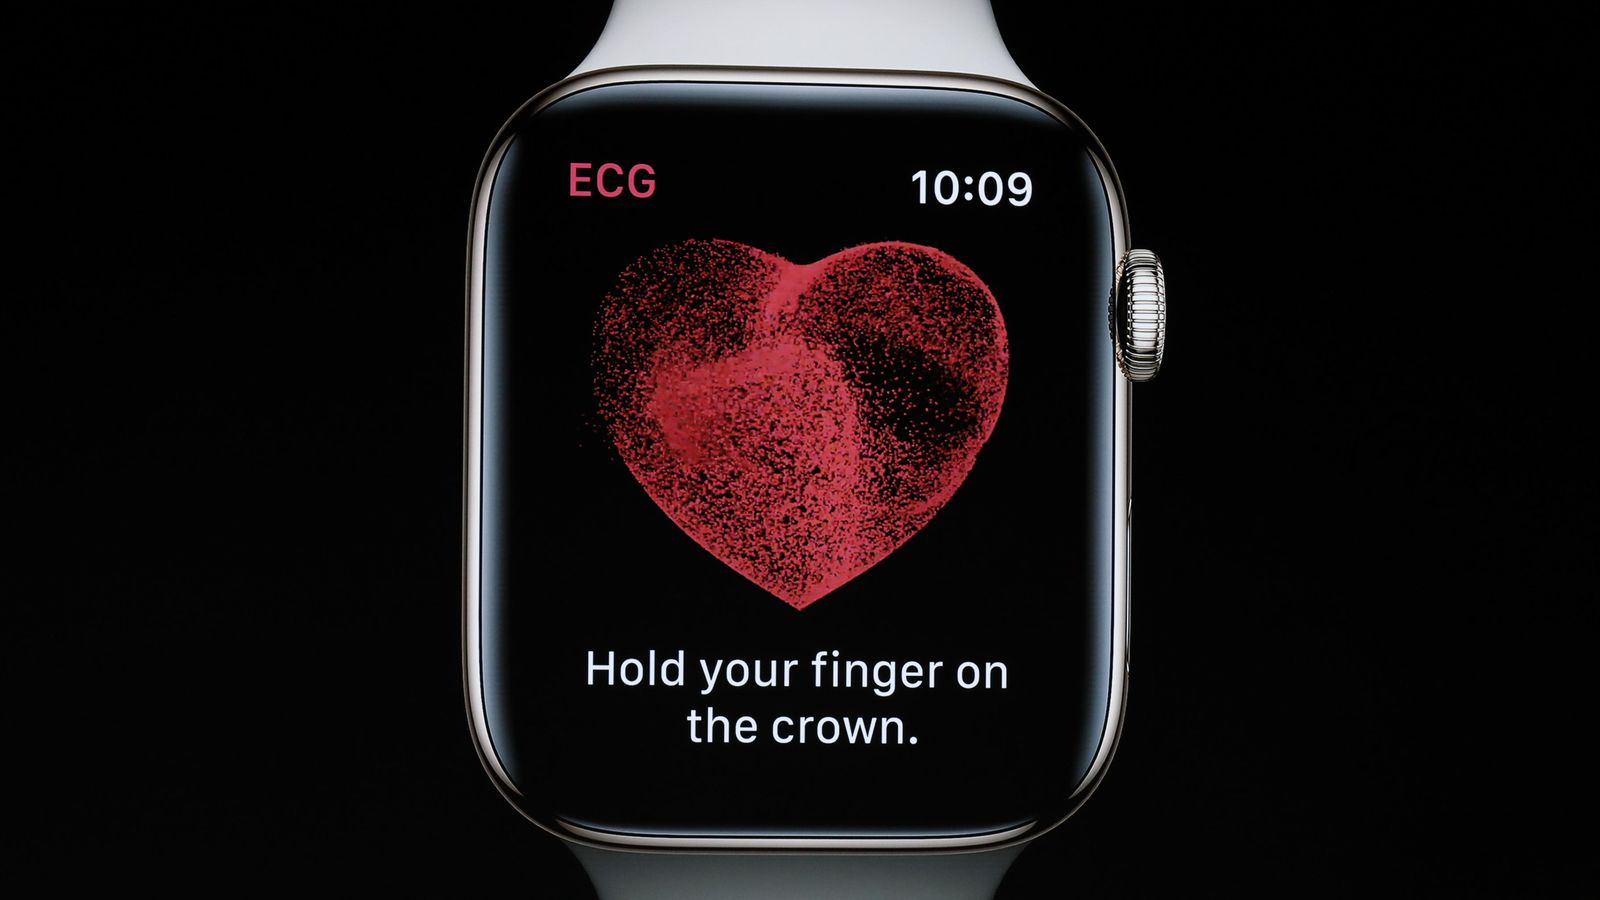 ECG App for Apple Watch Series 4